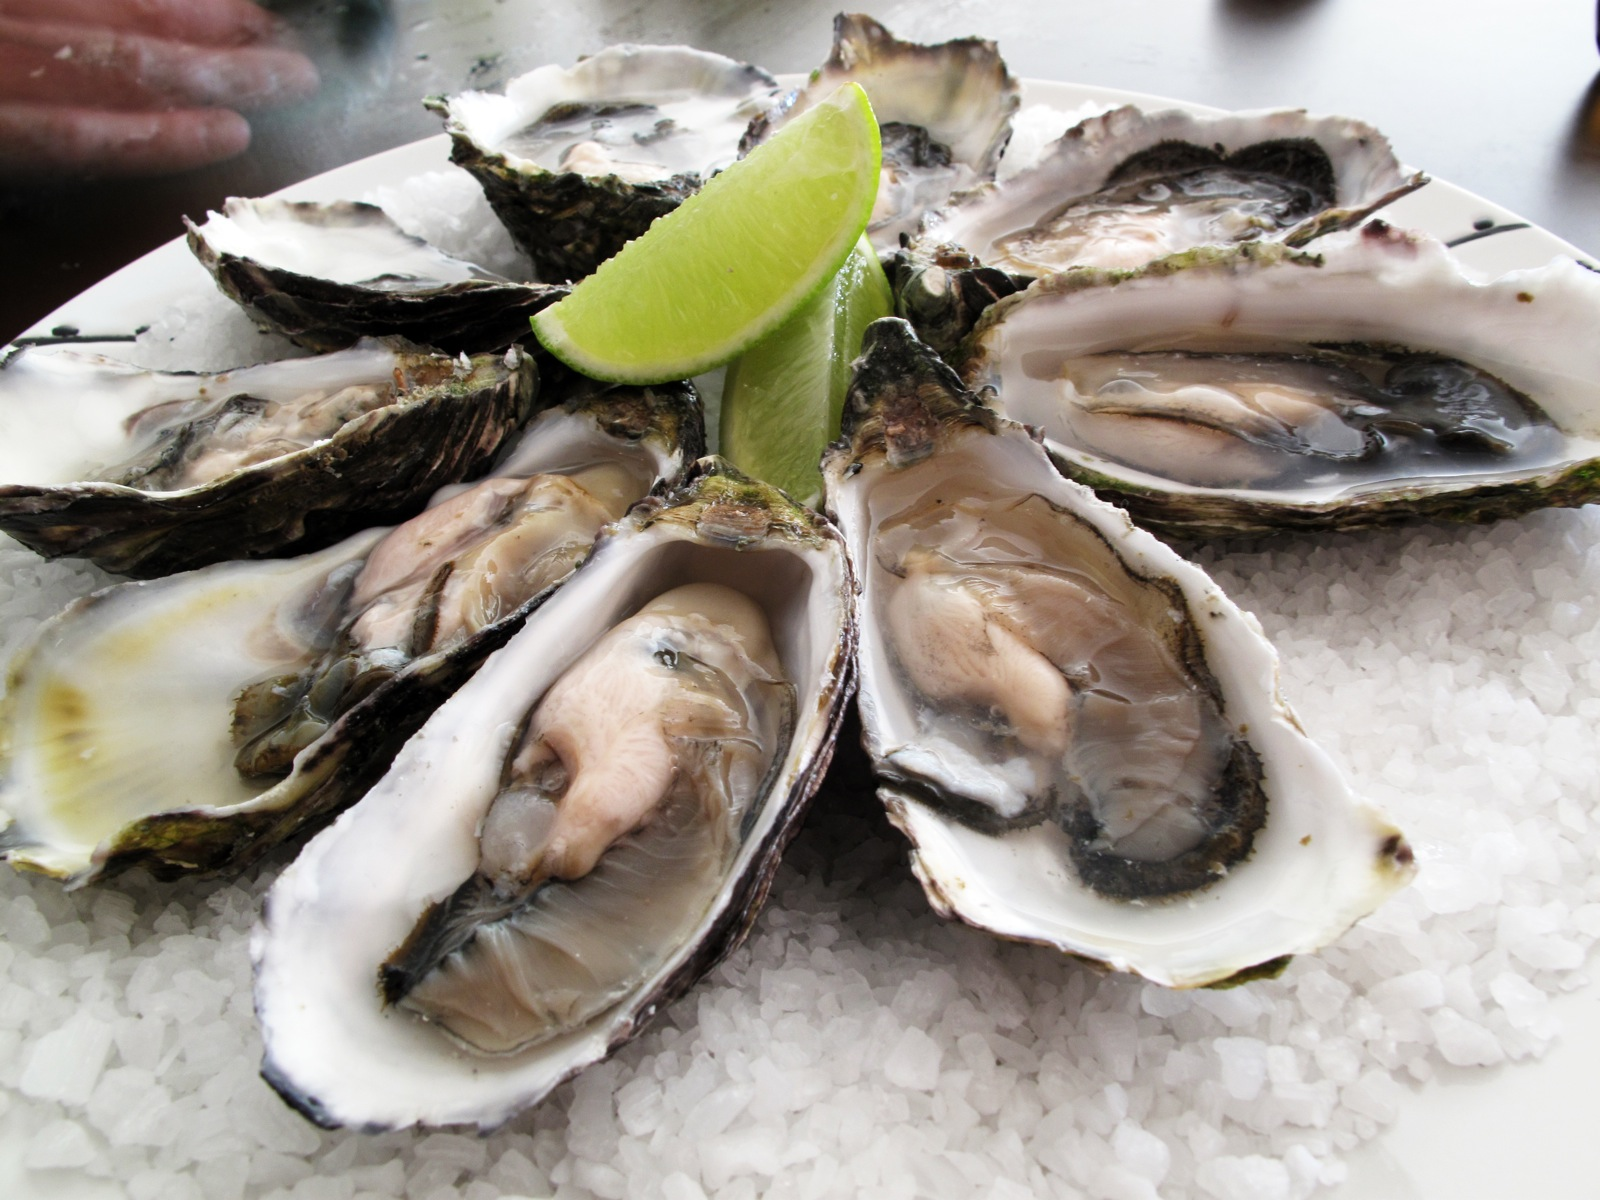 shucked oysters displayed with a wedge of lime